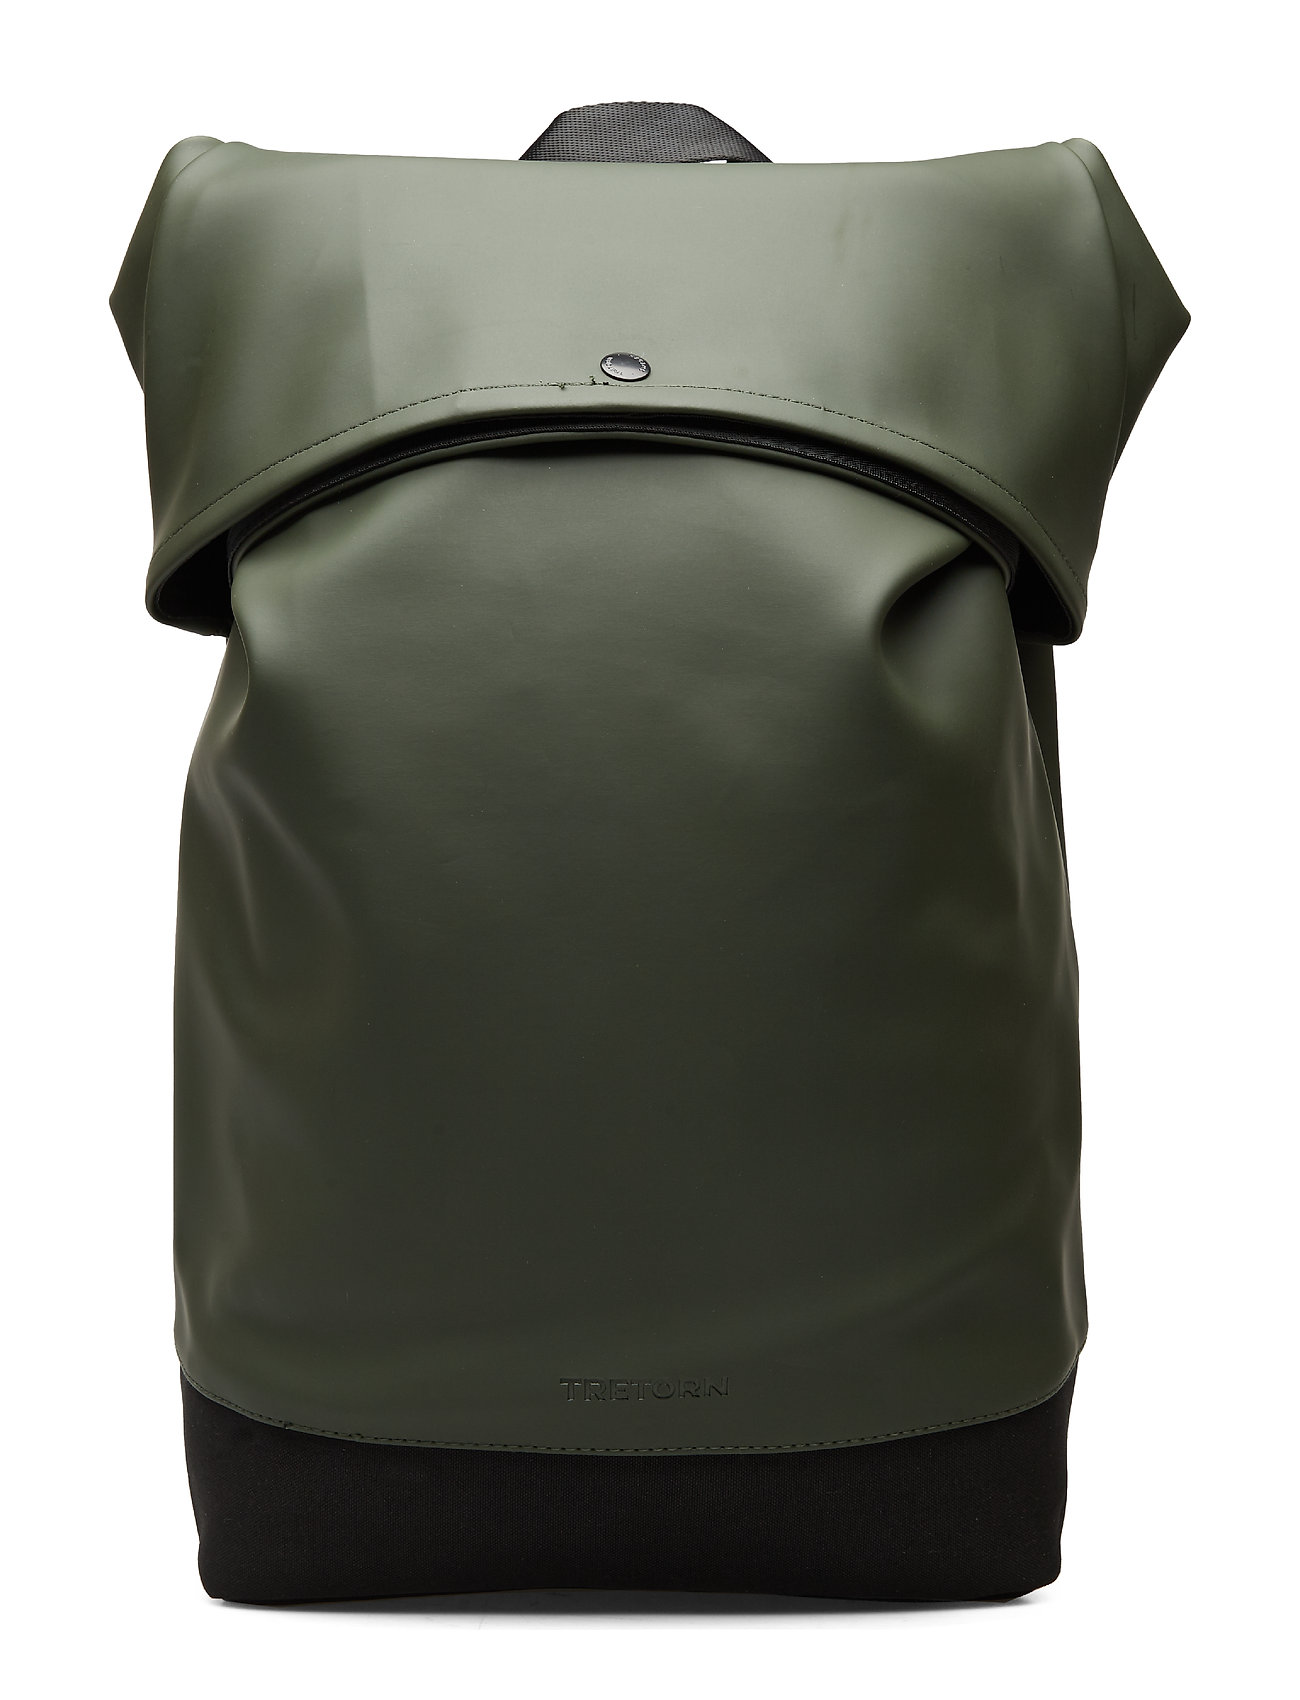 Tretorn MALMO ROLLTOP - 067/FOREST GREE